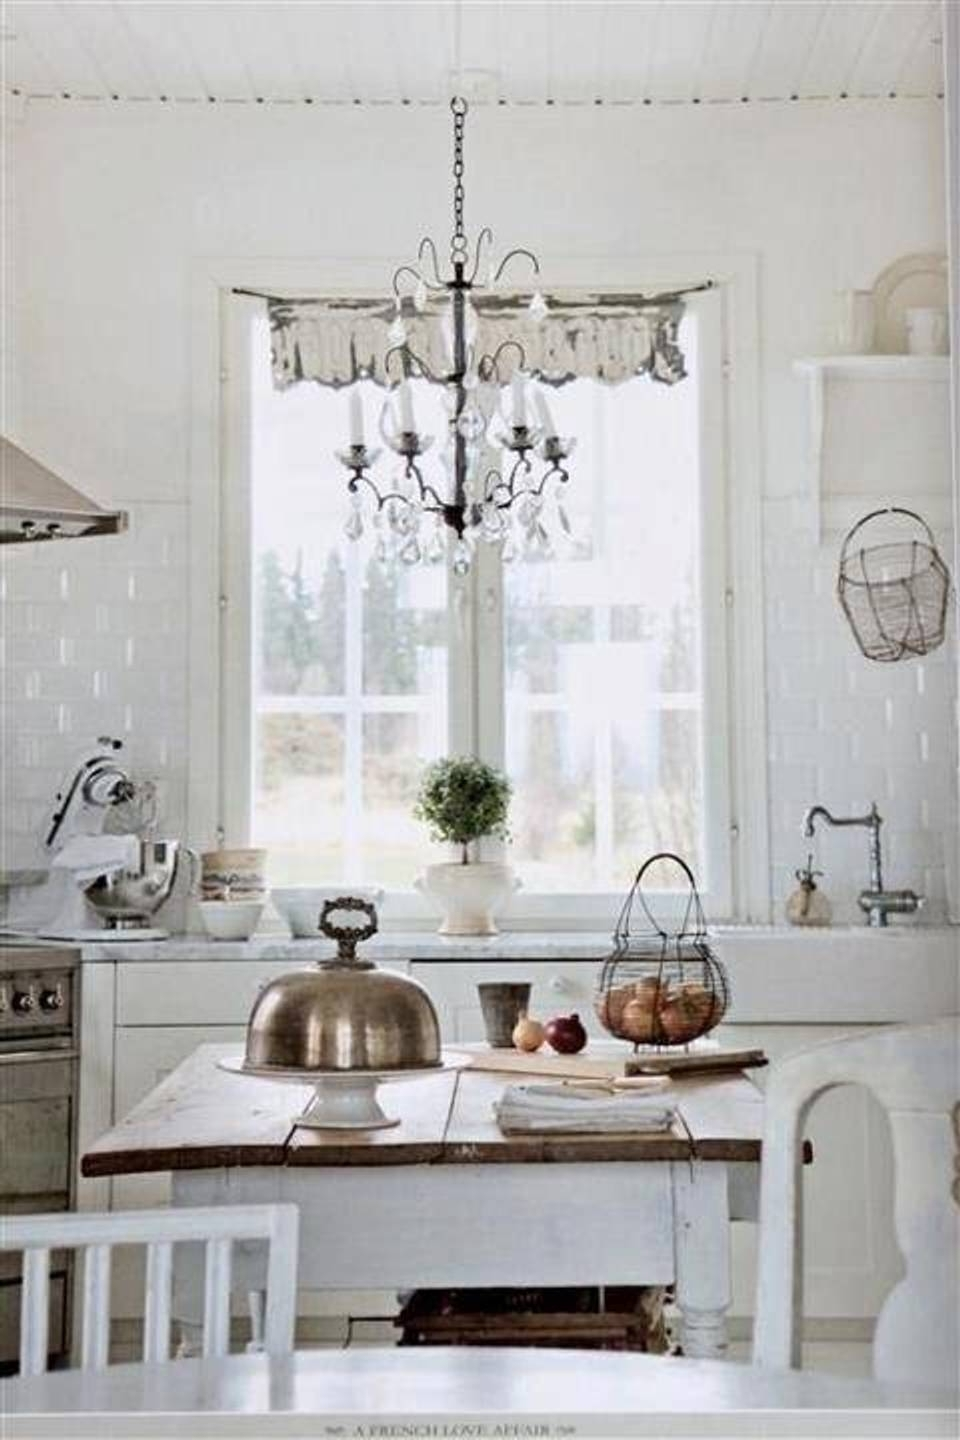 Country Chic Chandelier Intended For Recent Shabby Chic White Kitchen With Chandelier Lighting Fixtures (View 17 of 20)